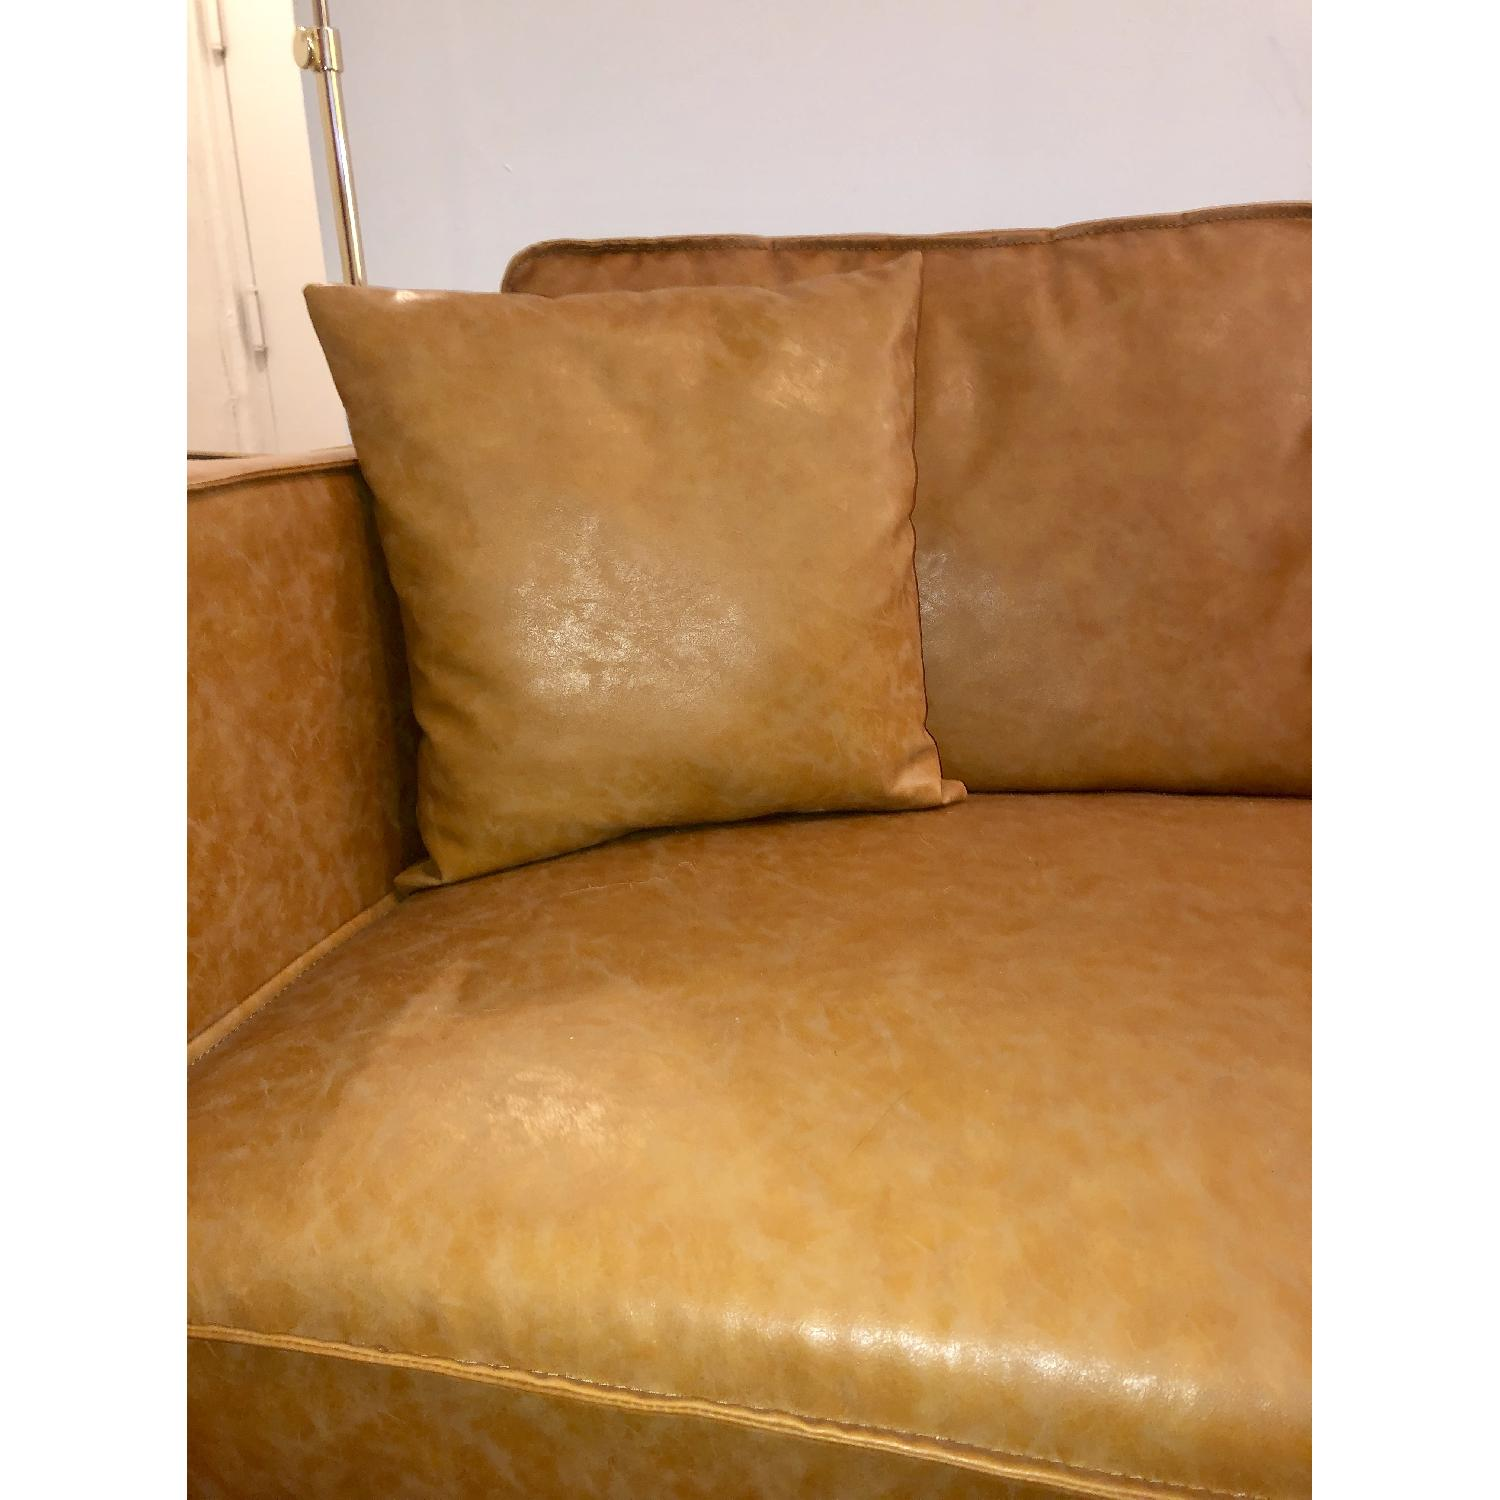 Union Rustic Manufahi Leather Sofa-1